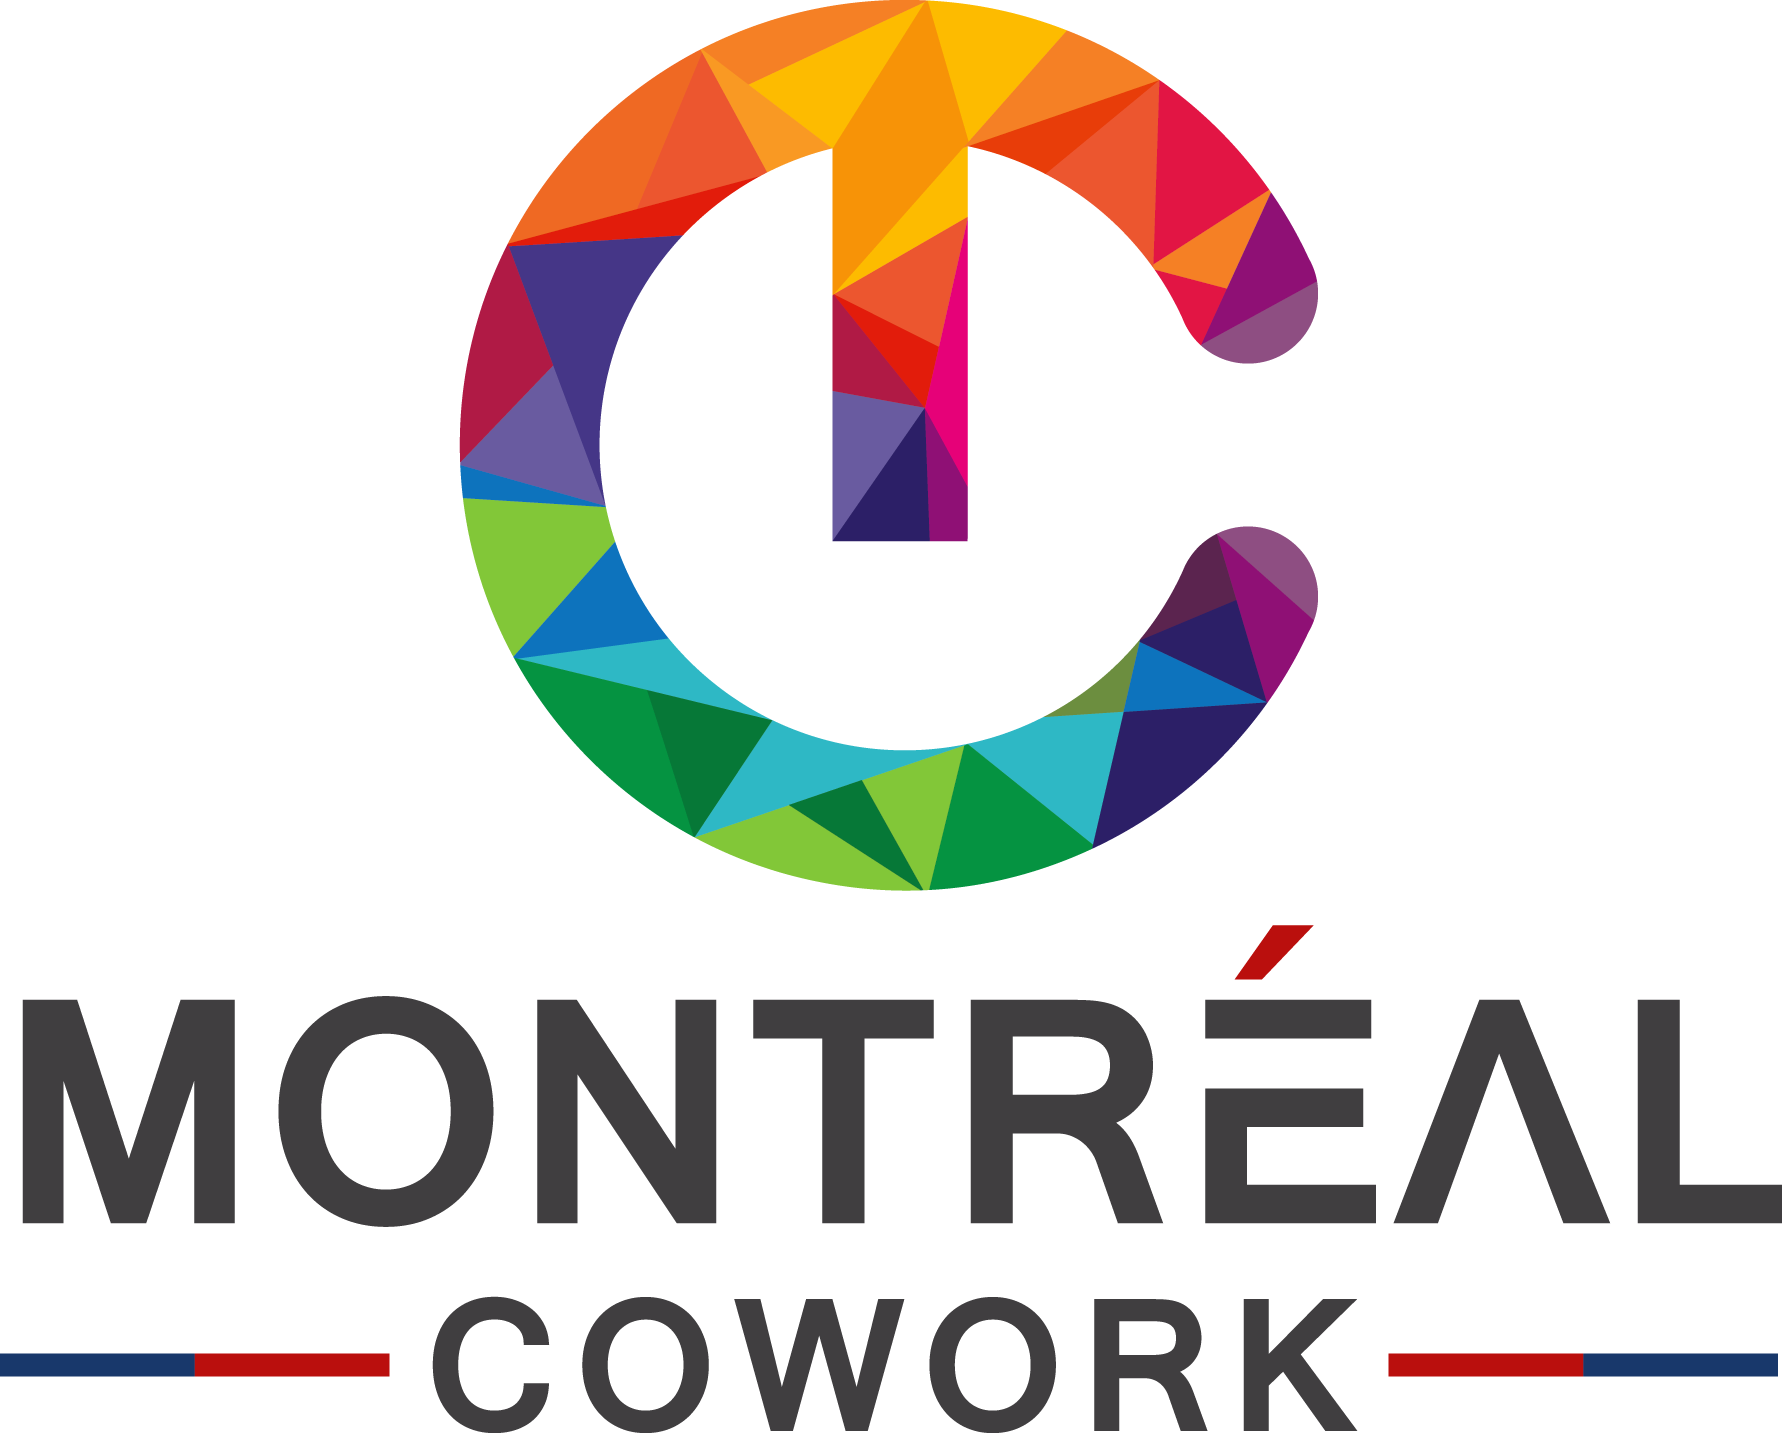 montreal-cowork.rgb.png